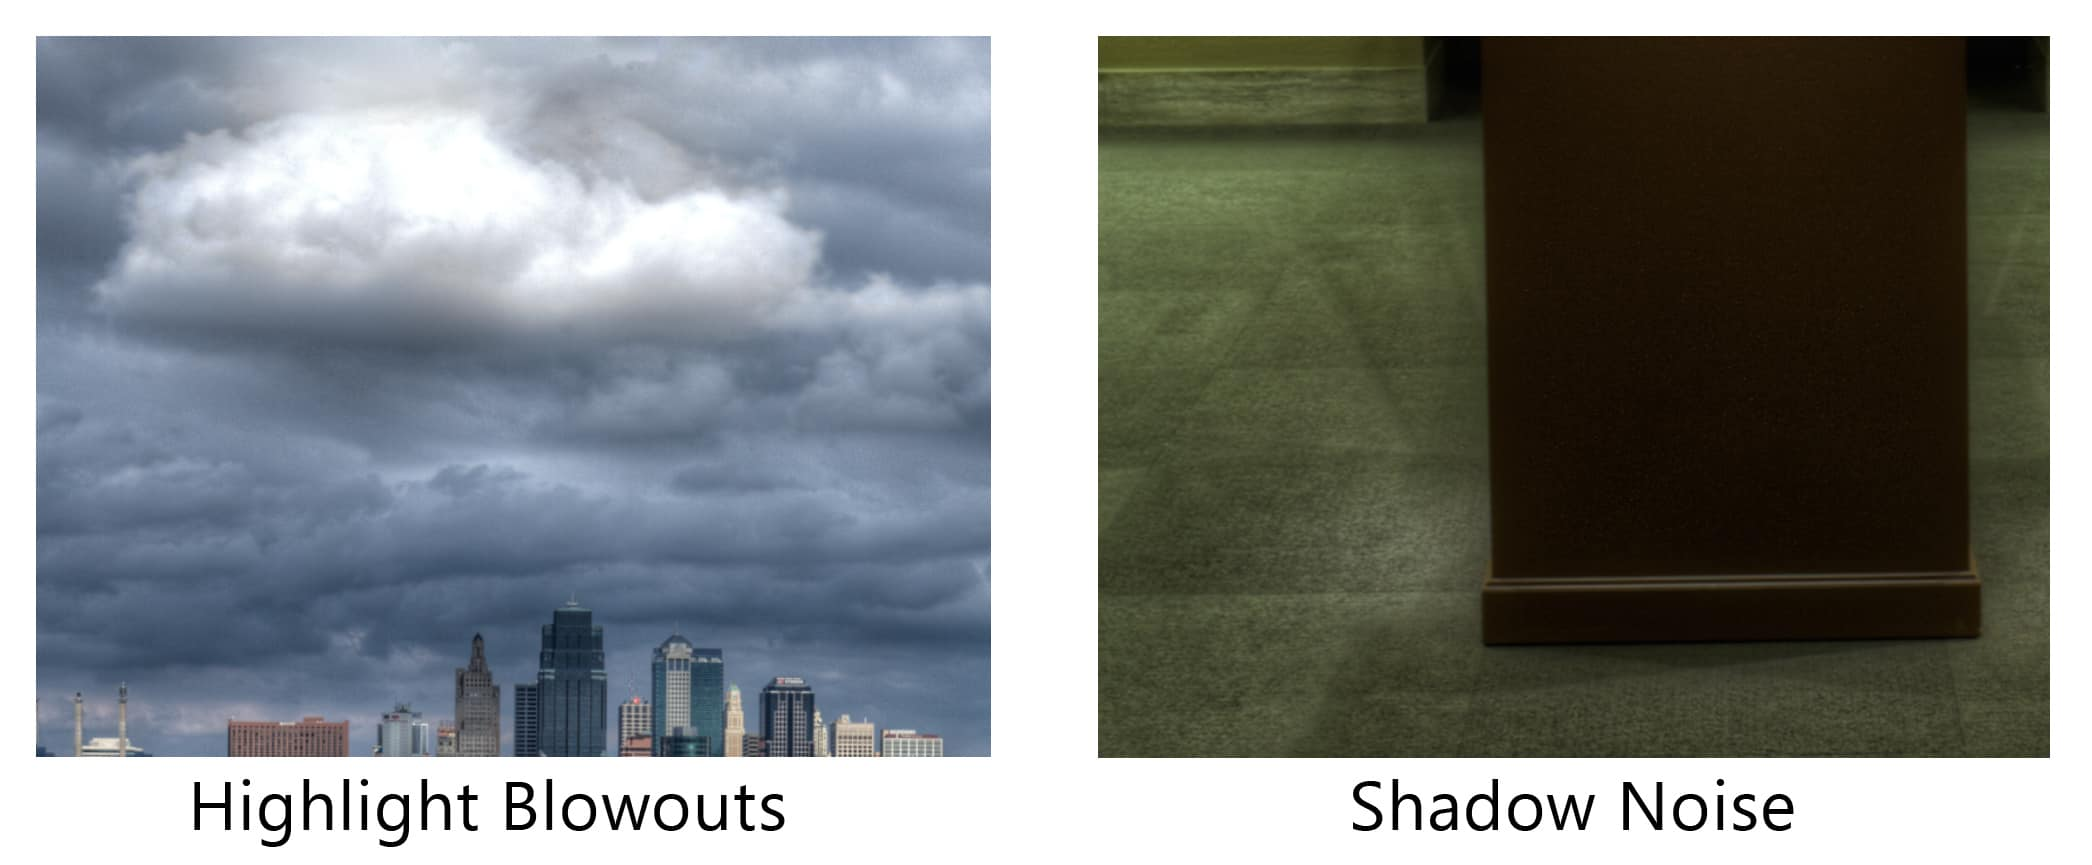 Tutorial: Fixing Shadow Noise and Highlight Blowouts